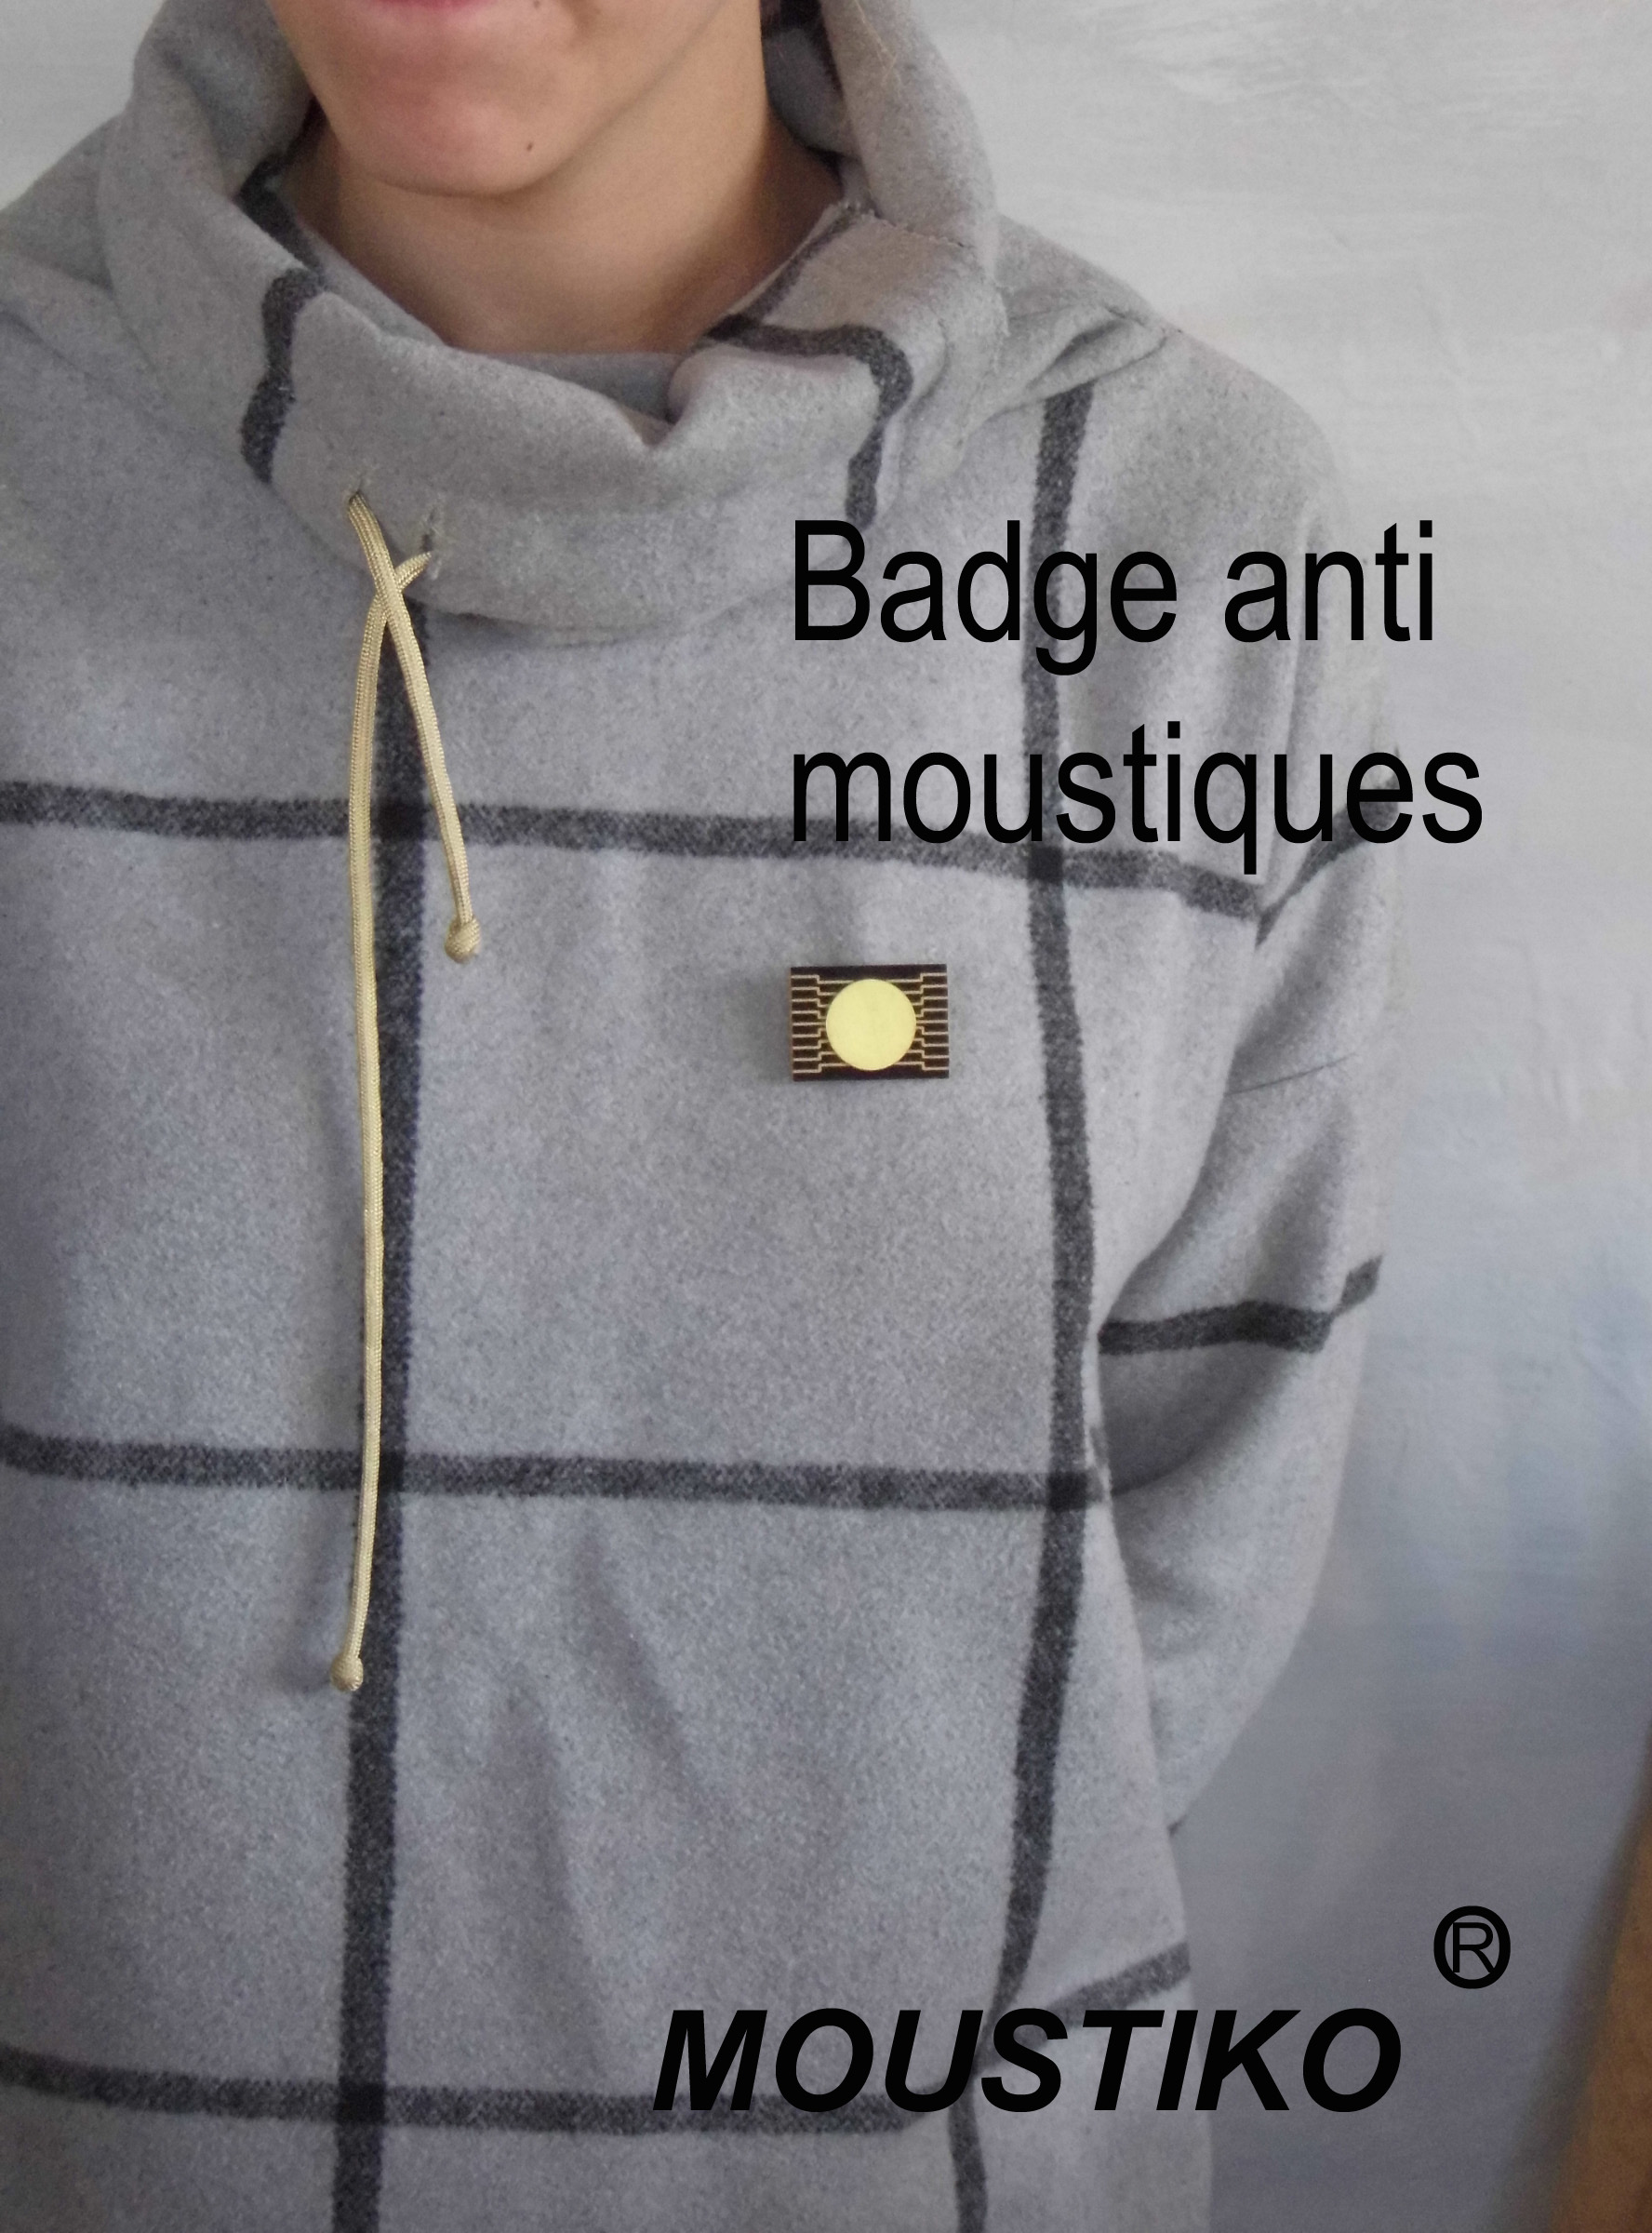 Badge anti moustiques électronique non polluant sans produit chimique electrónico ecológico inodoro contra insignia Electronic mosquito environmentally friendly anti badge odorless